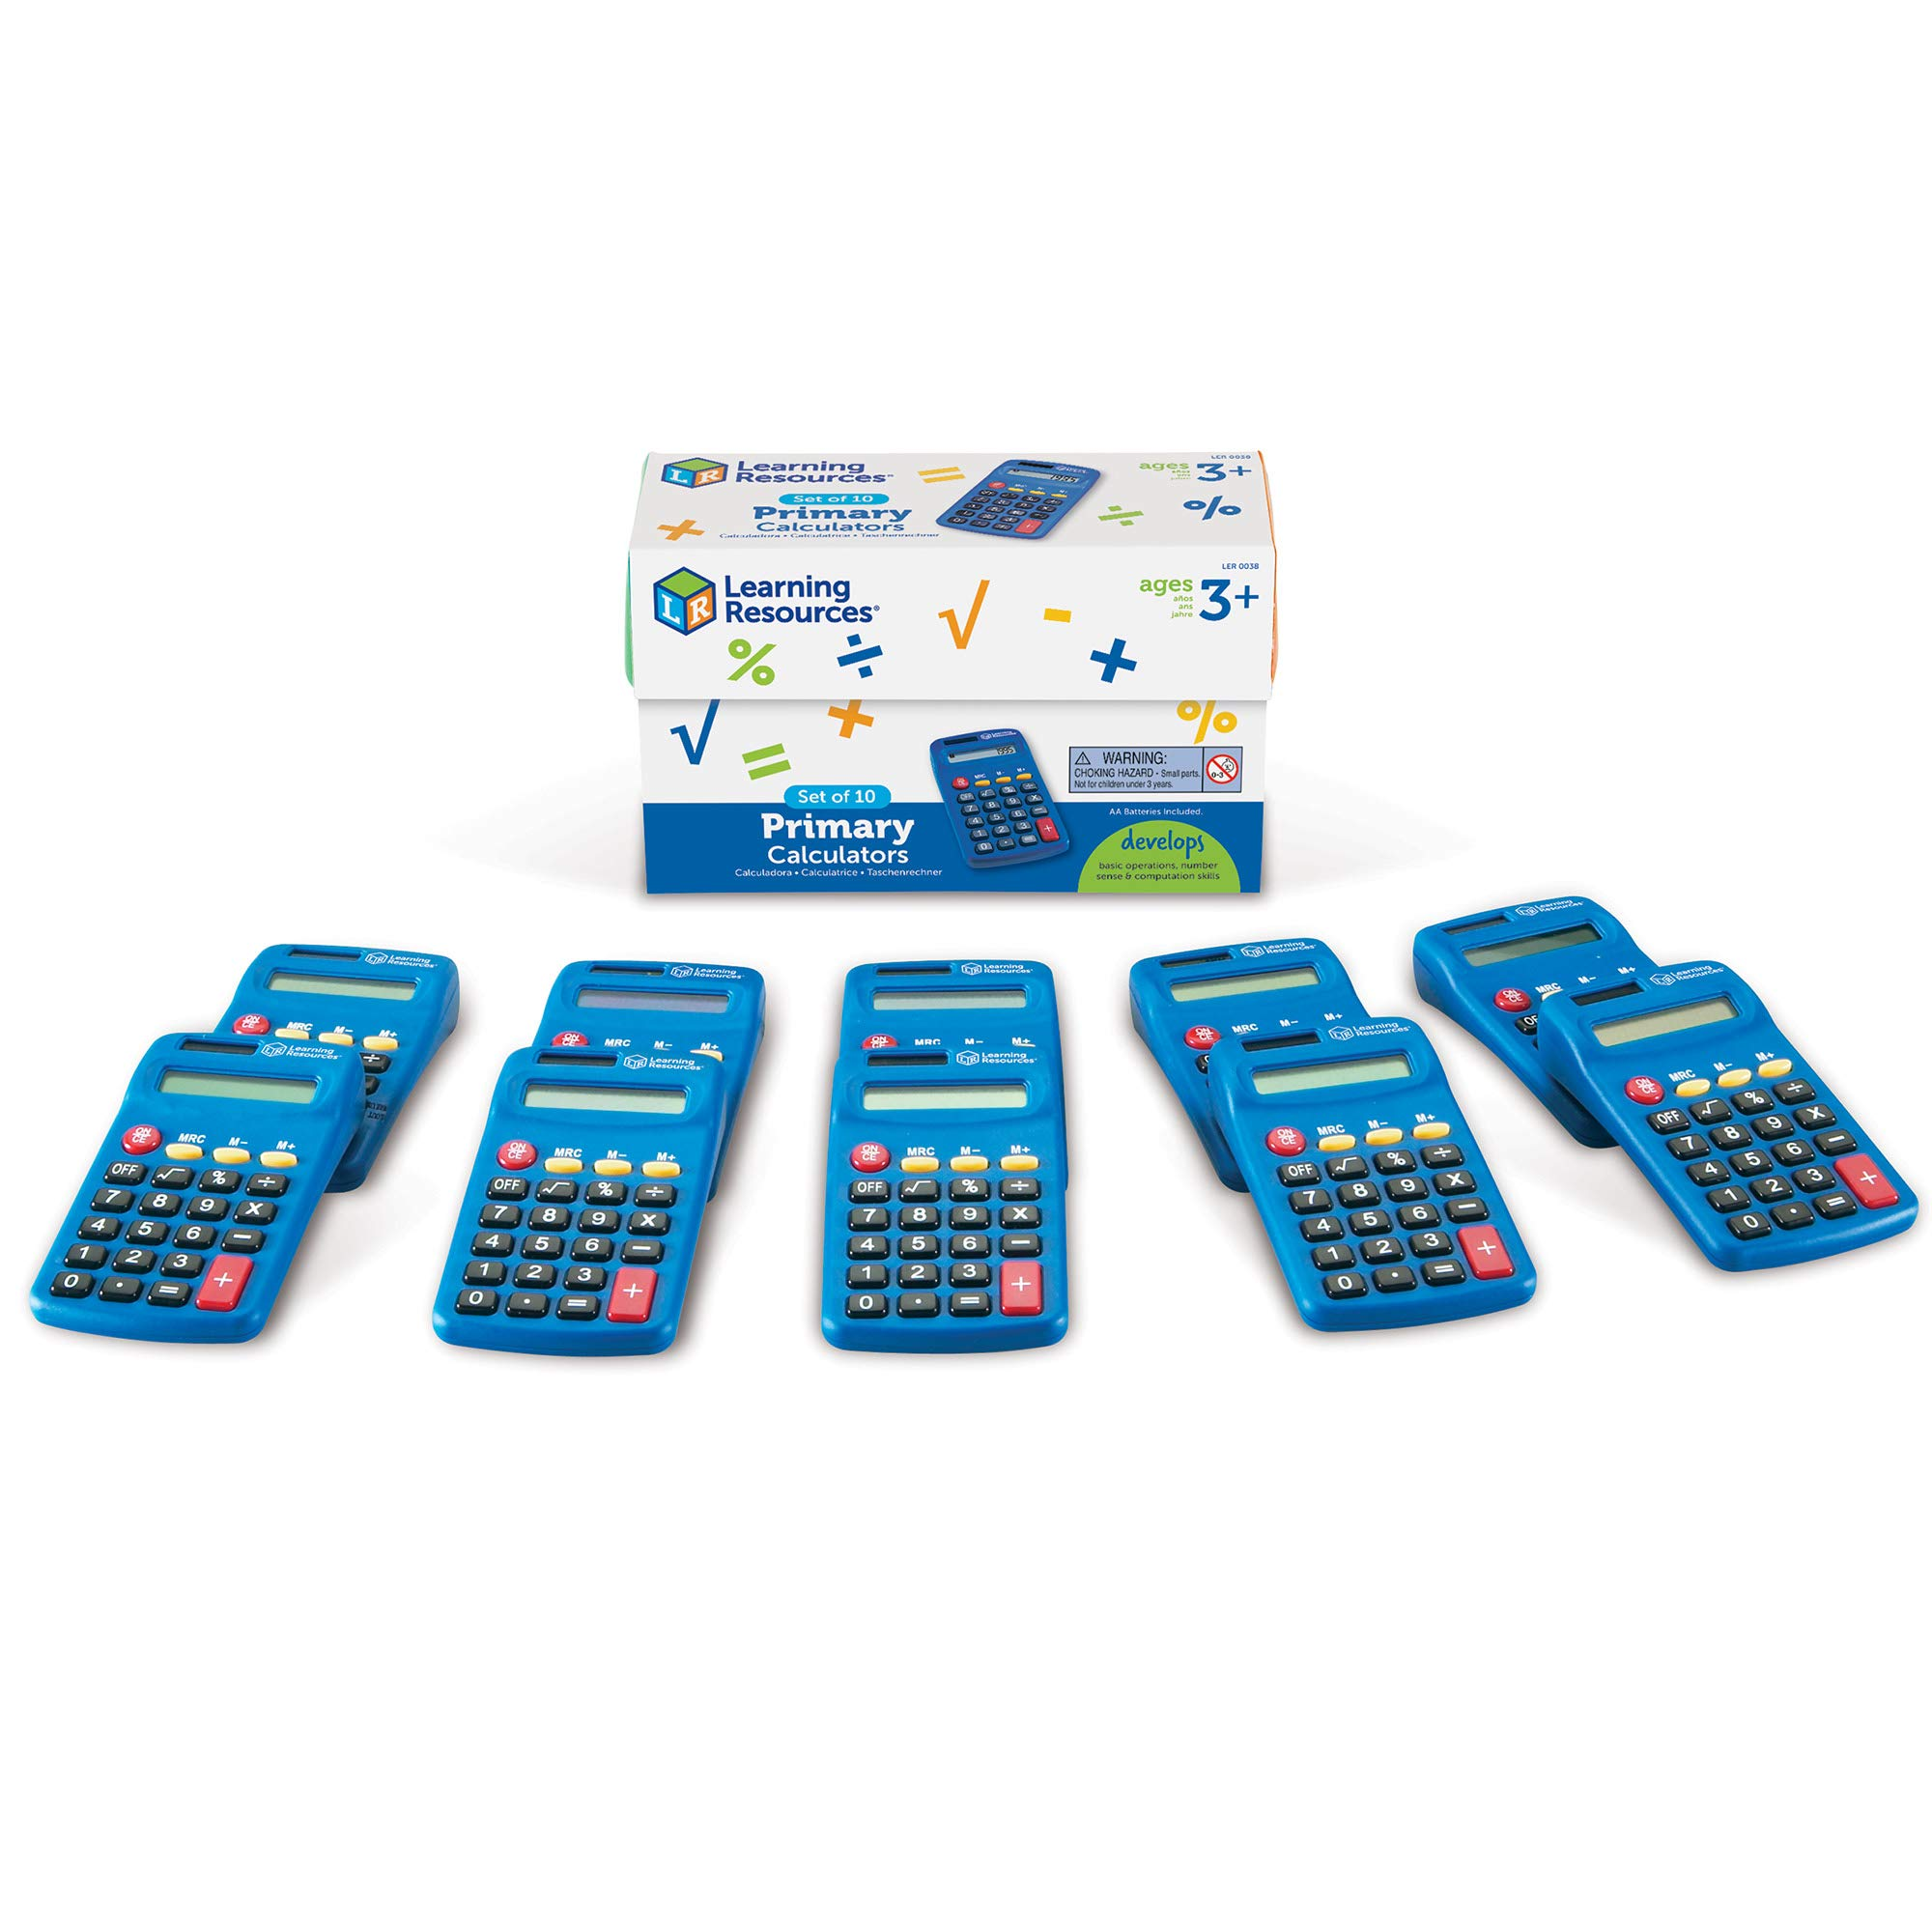 Learning Resources Primary Calculator, Basic Solar Powered Calculators, Teacher Set of 10 Calculators, Ages 3+ by Learning Resources